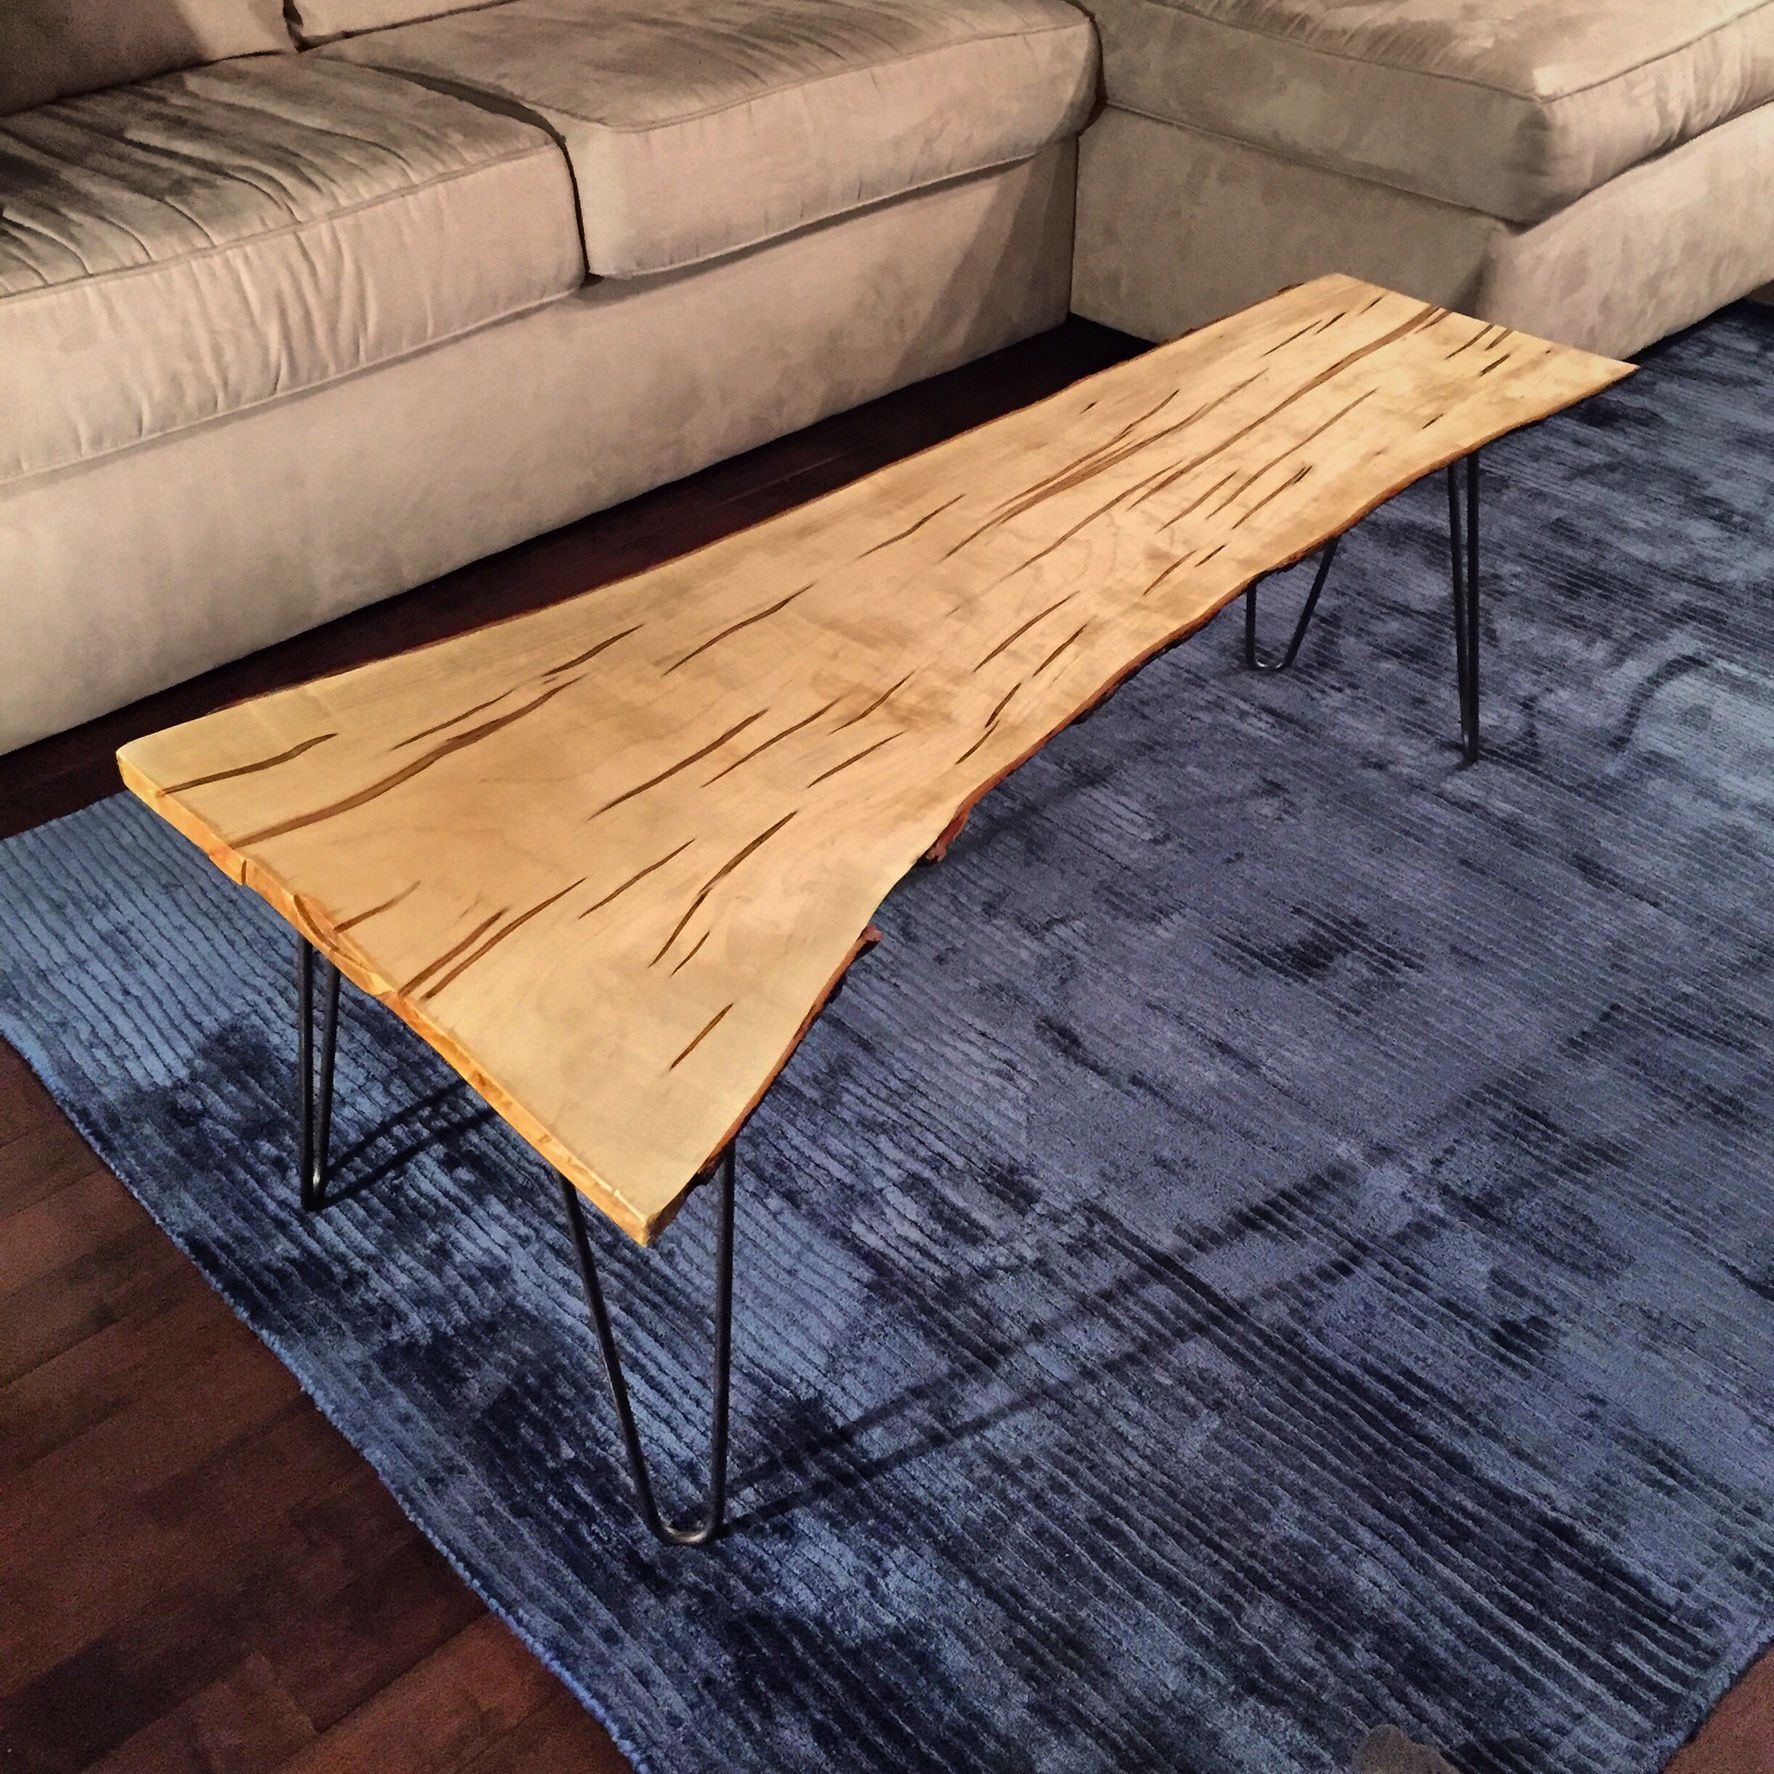 Live Edge Ambrosia Maple coffee table with hairpin legs DIY